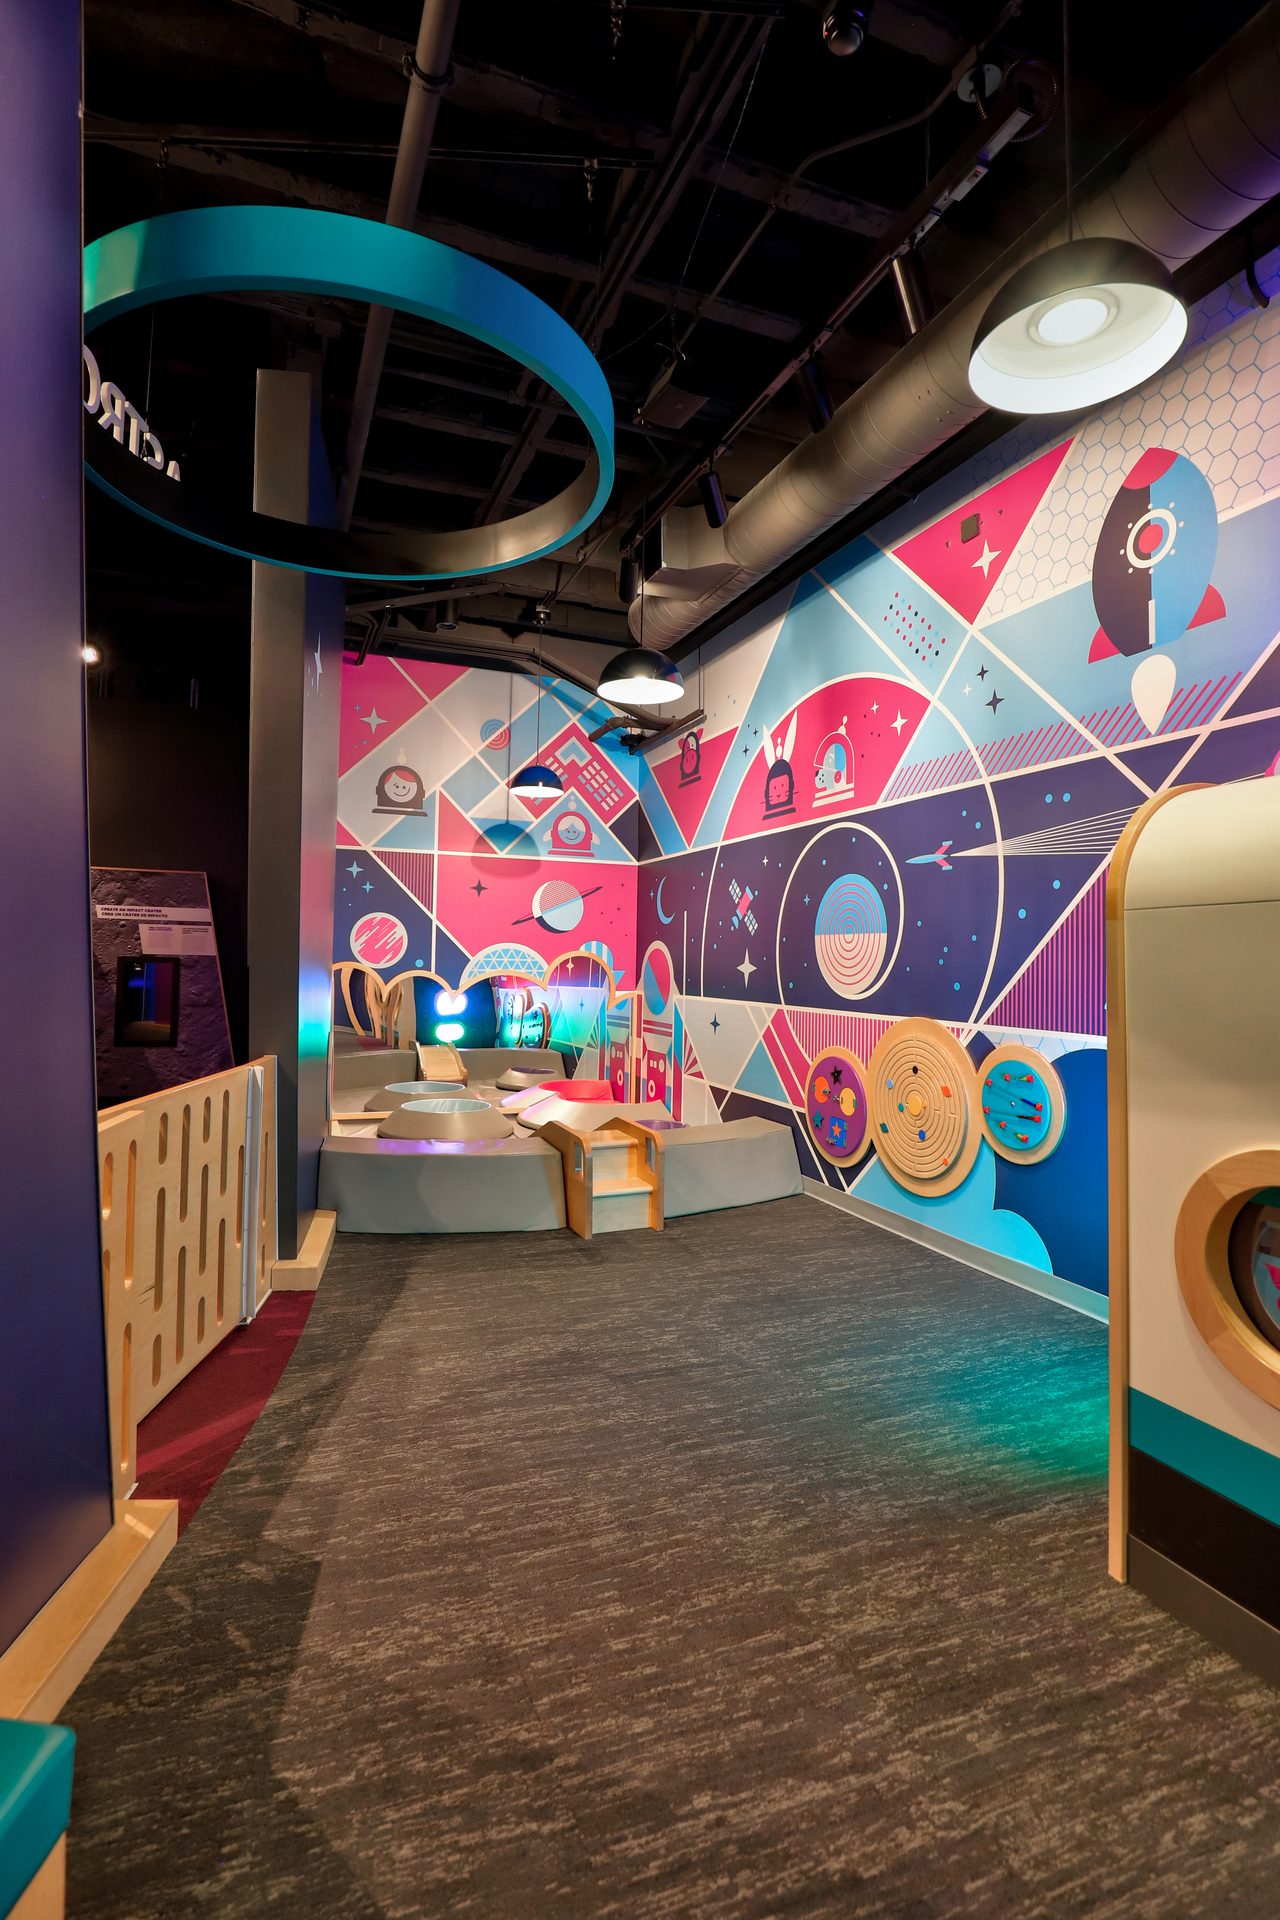 Explore space in this children's area with the bright wall graphics, custom lighting and interactive toys.